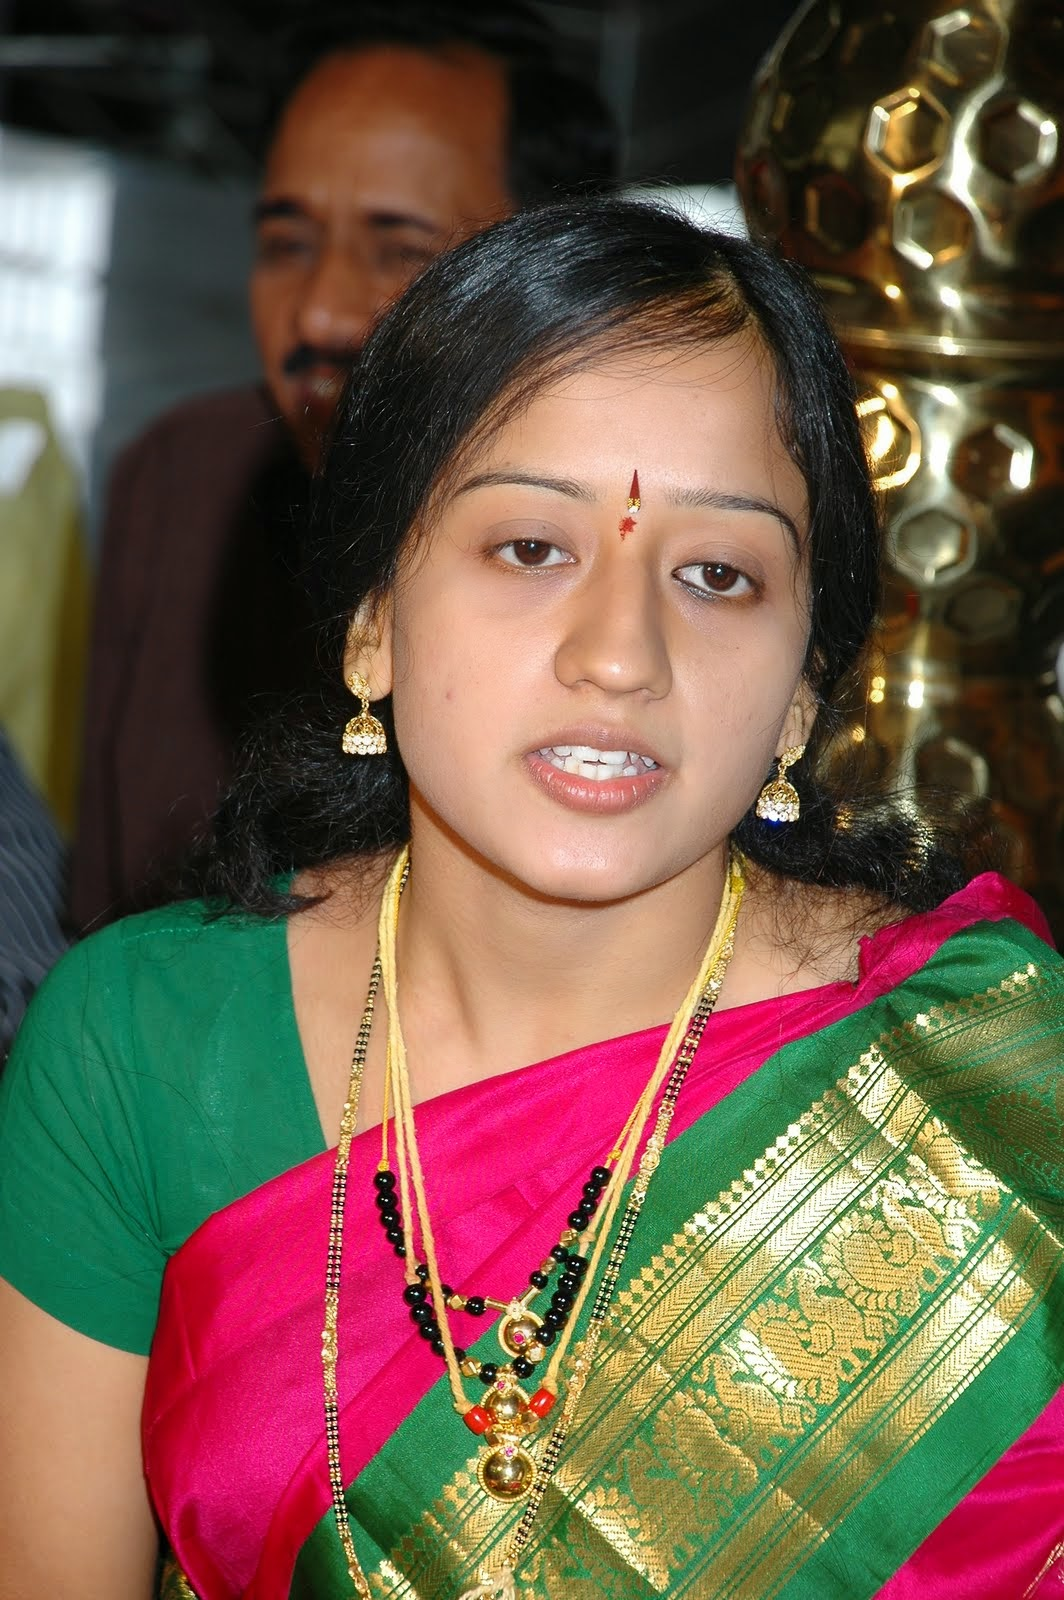 Beautiful Malayali Housewife during Marriage Celebration